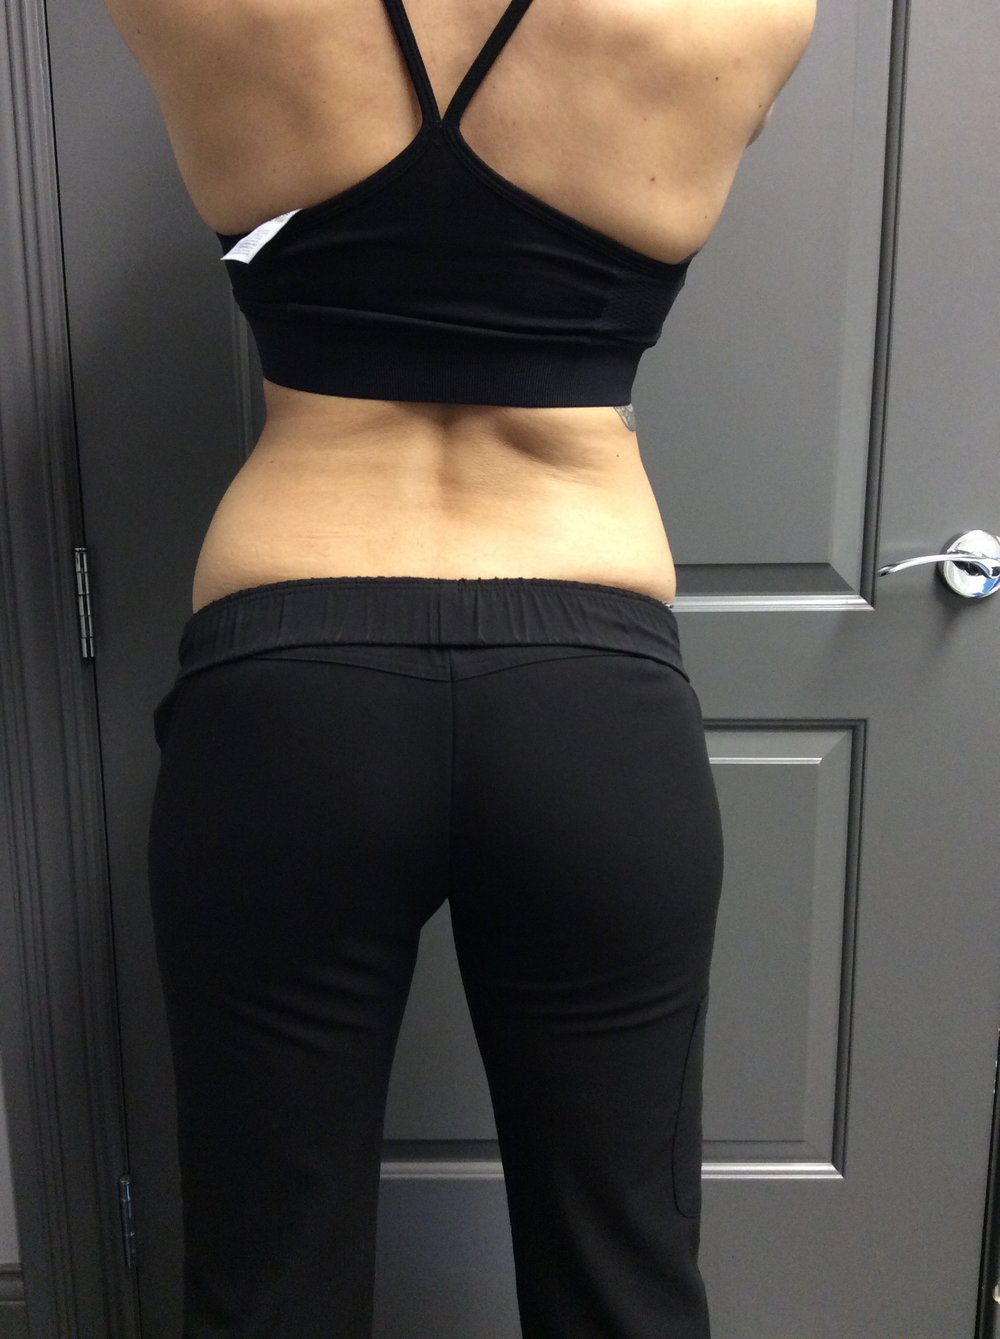 Pure Luxe patient's waist before CoolSculpting